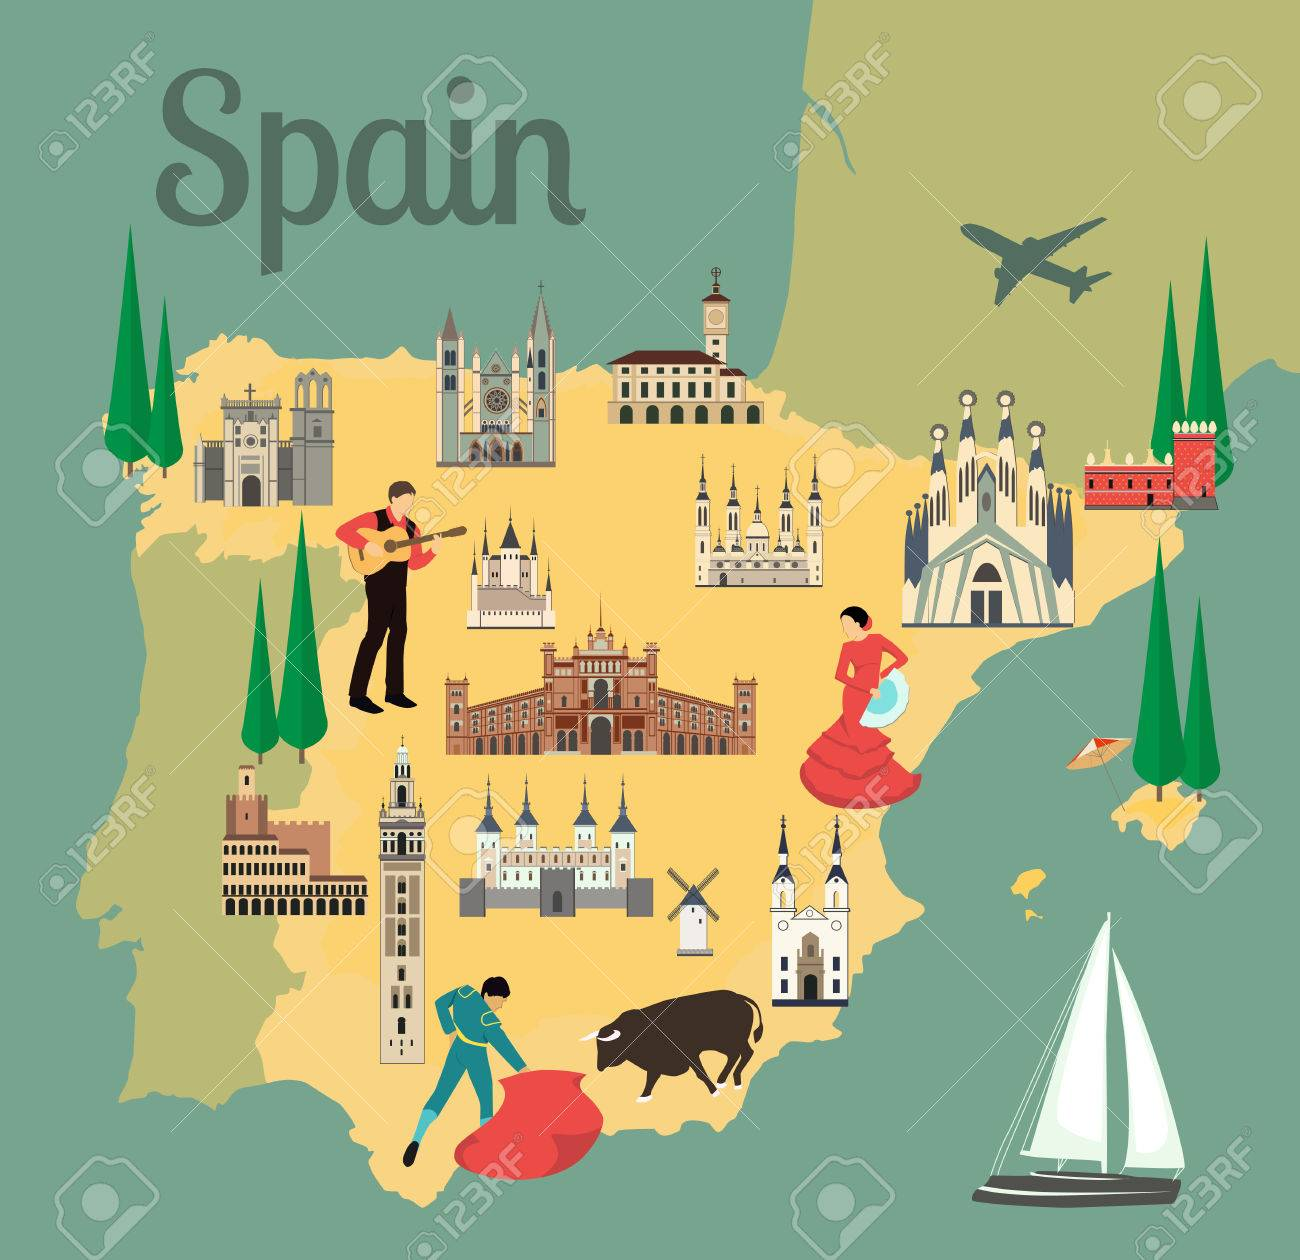 Travel Map Of Spain.Spain Travel Map With Sights Flat Style Vector Illustration